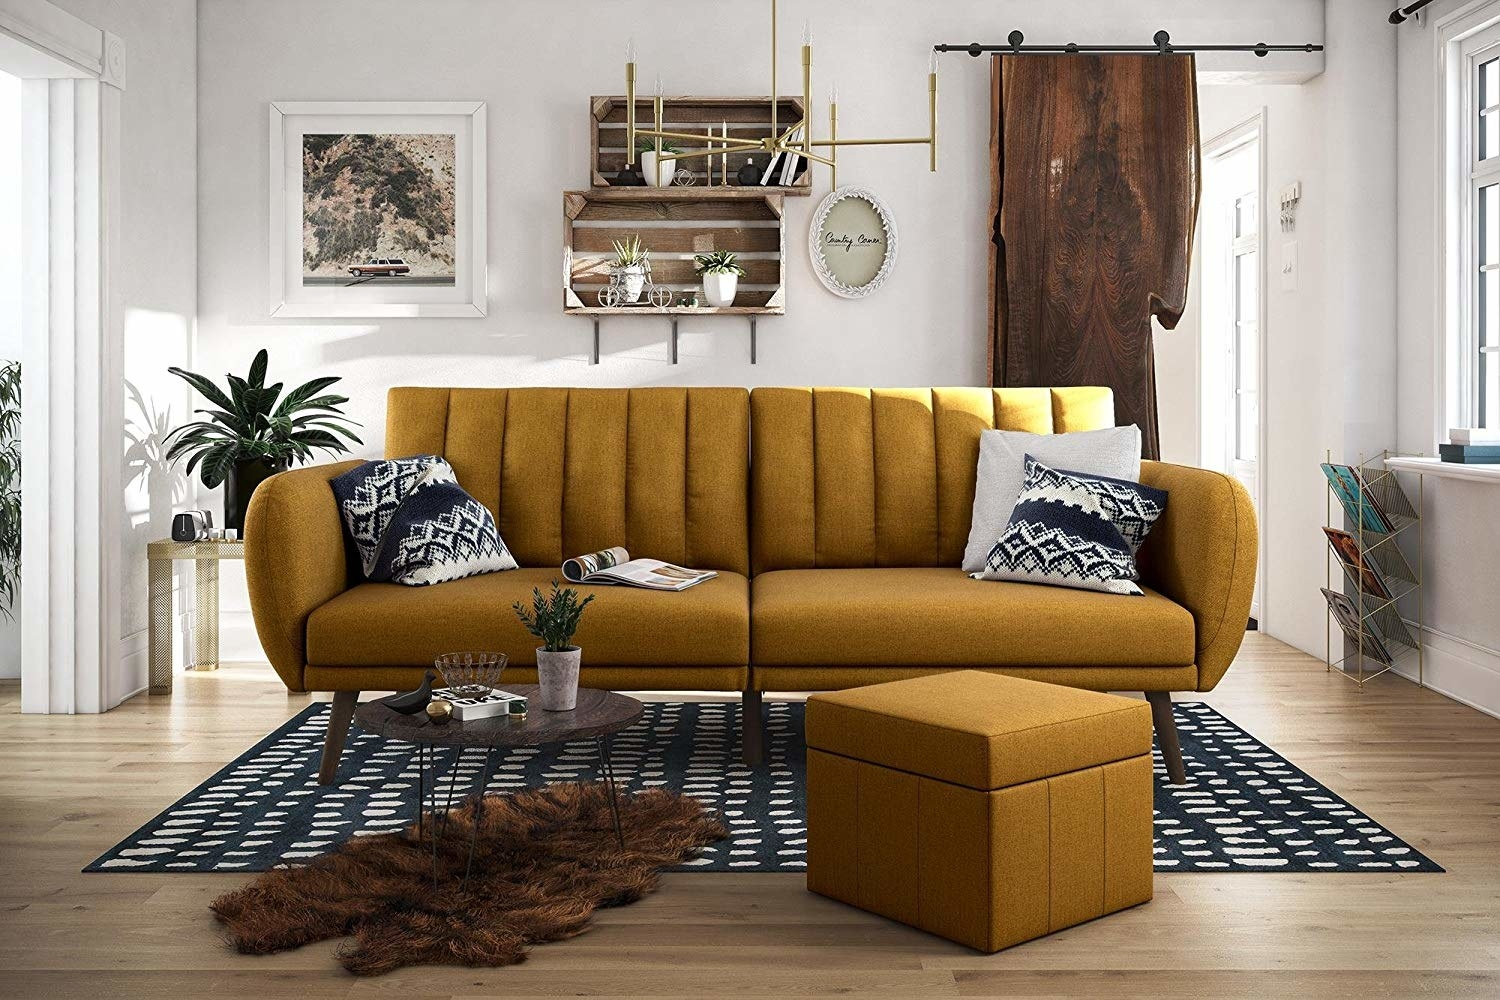 mustard yellow vertically tufted futon couch with matching ottoman